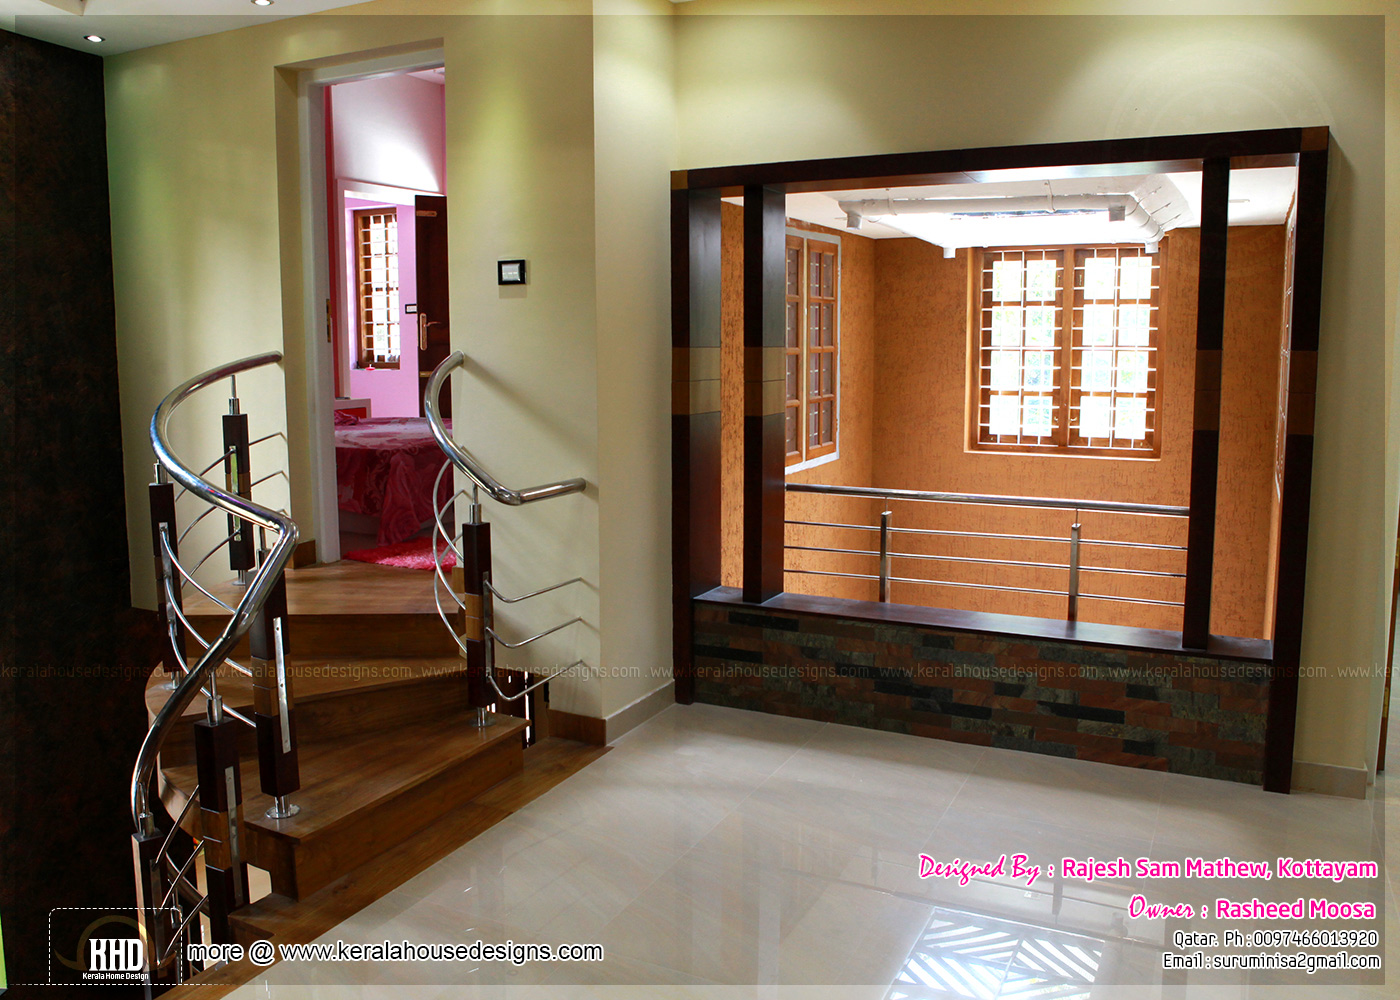 Kerala interior design with photos kerala home design Home interior design indian style